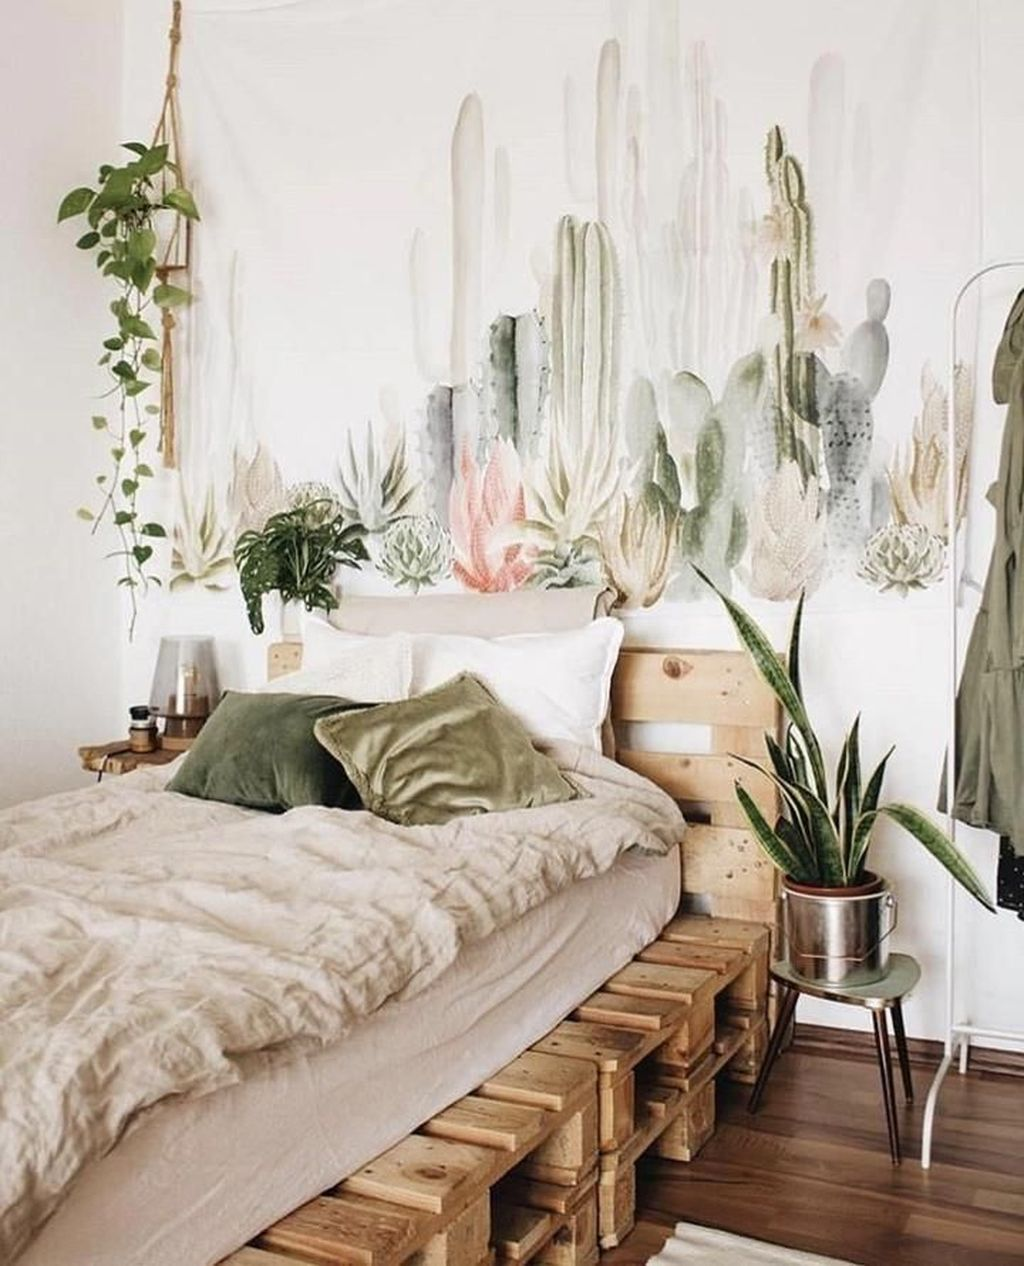 Lovely Bedroom Decor With Plant Ideas 13